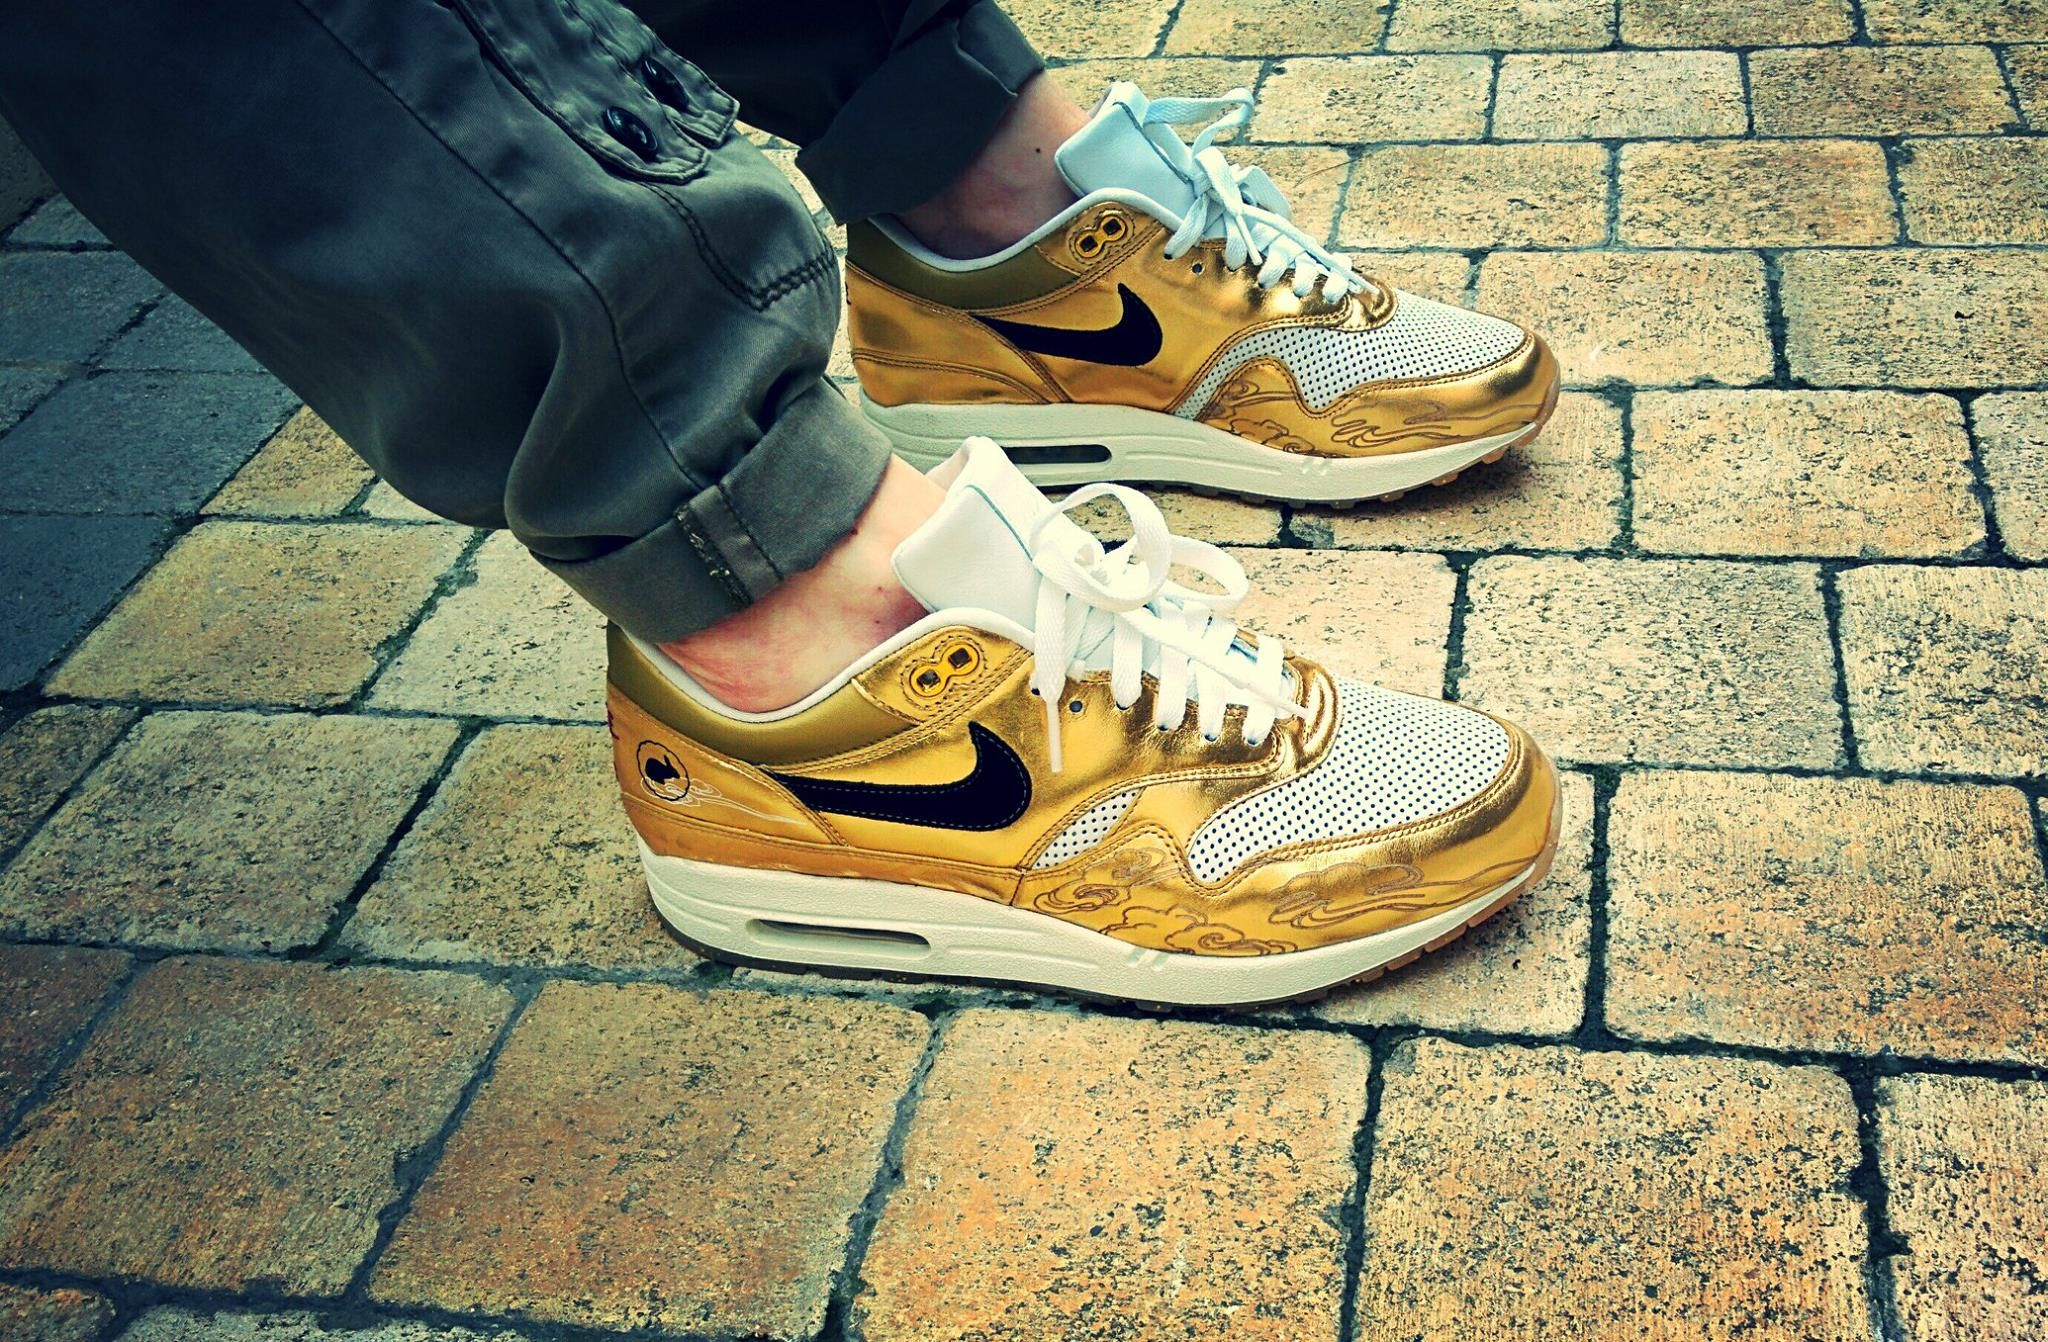 Best Ofsadp14072014Sneakers Ofsadp14072014Sneakers Nike Best Ofsadp14072014Sneakers Best Nike 3RL5jqA4